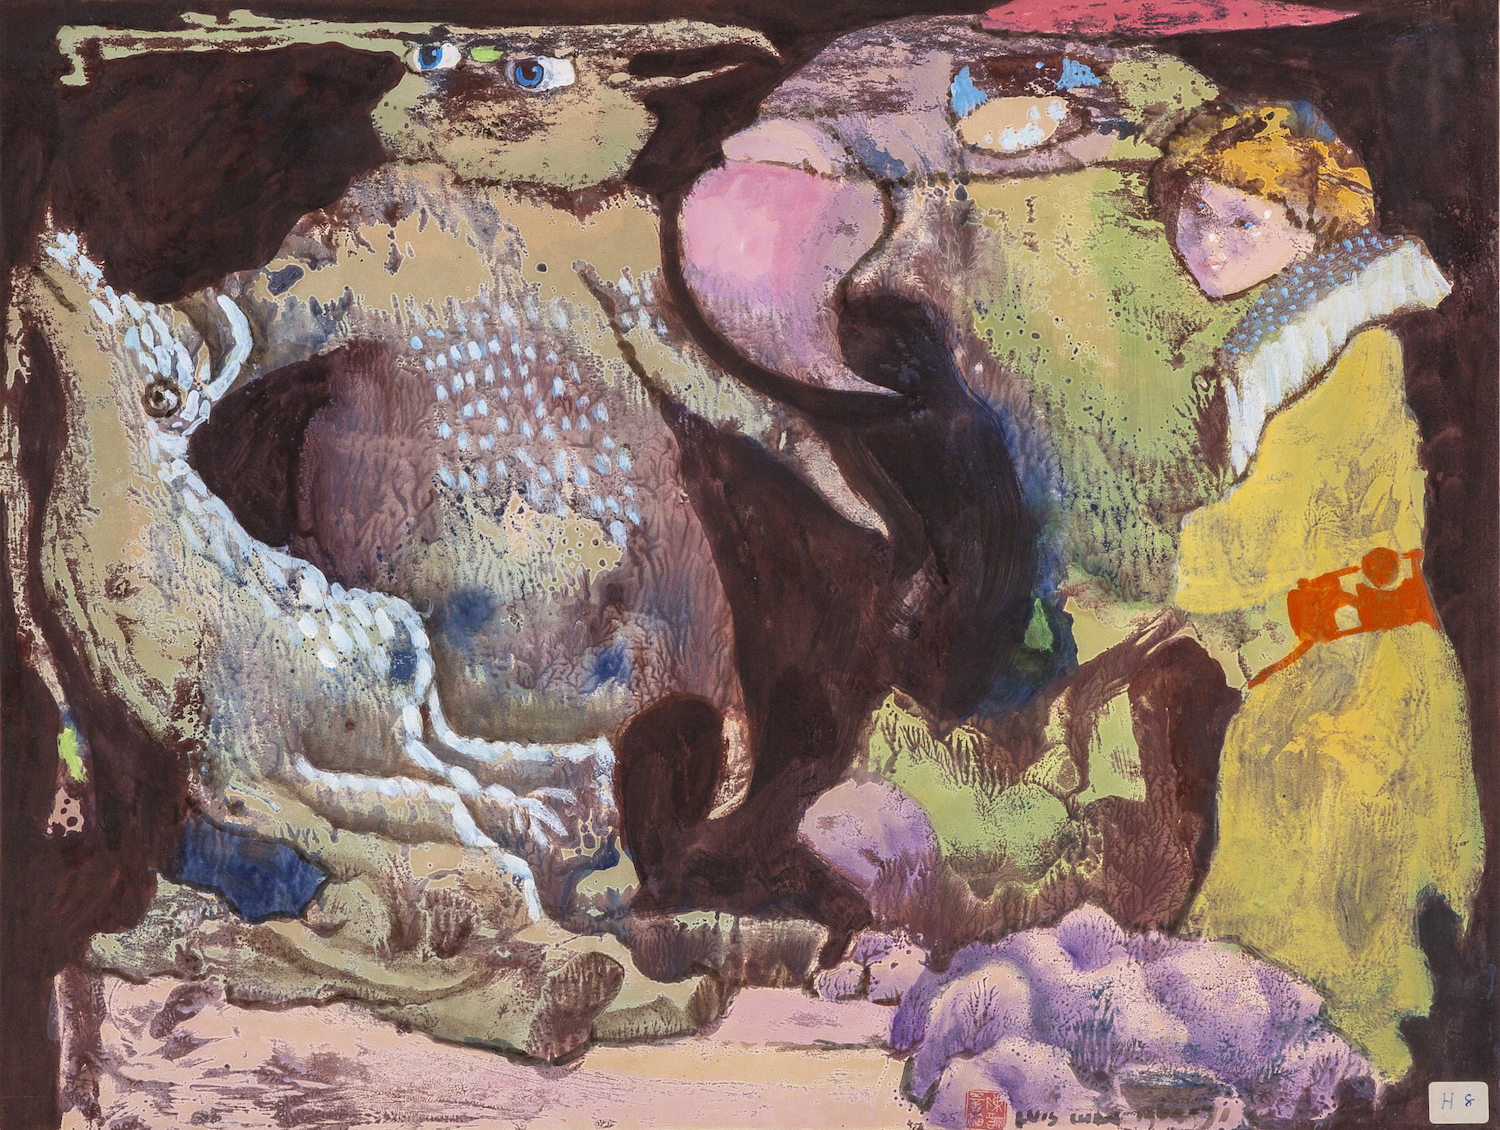 Luis Chan, 'Untitled (Goldenhaired Girl with Bird and Beasts), 1964-1971, acrylic on paper, 45 x 59 cm. Image courtesy Asia Art Archive.